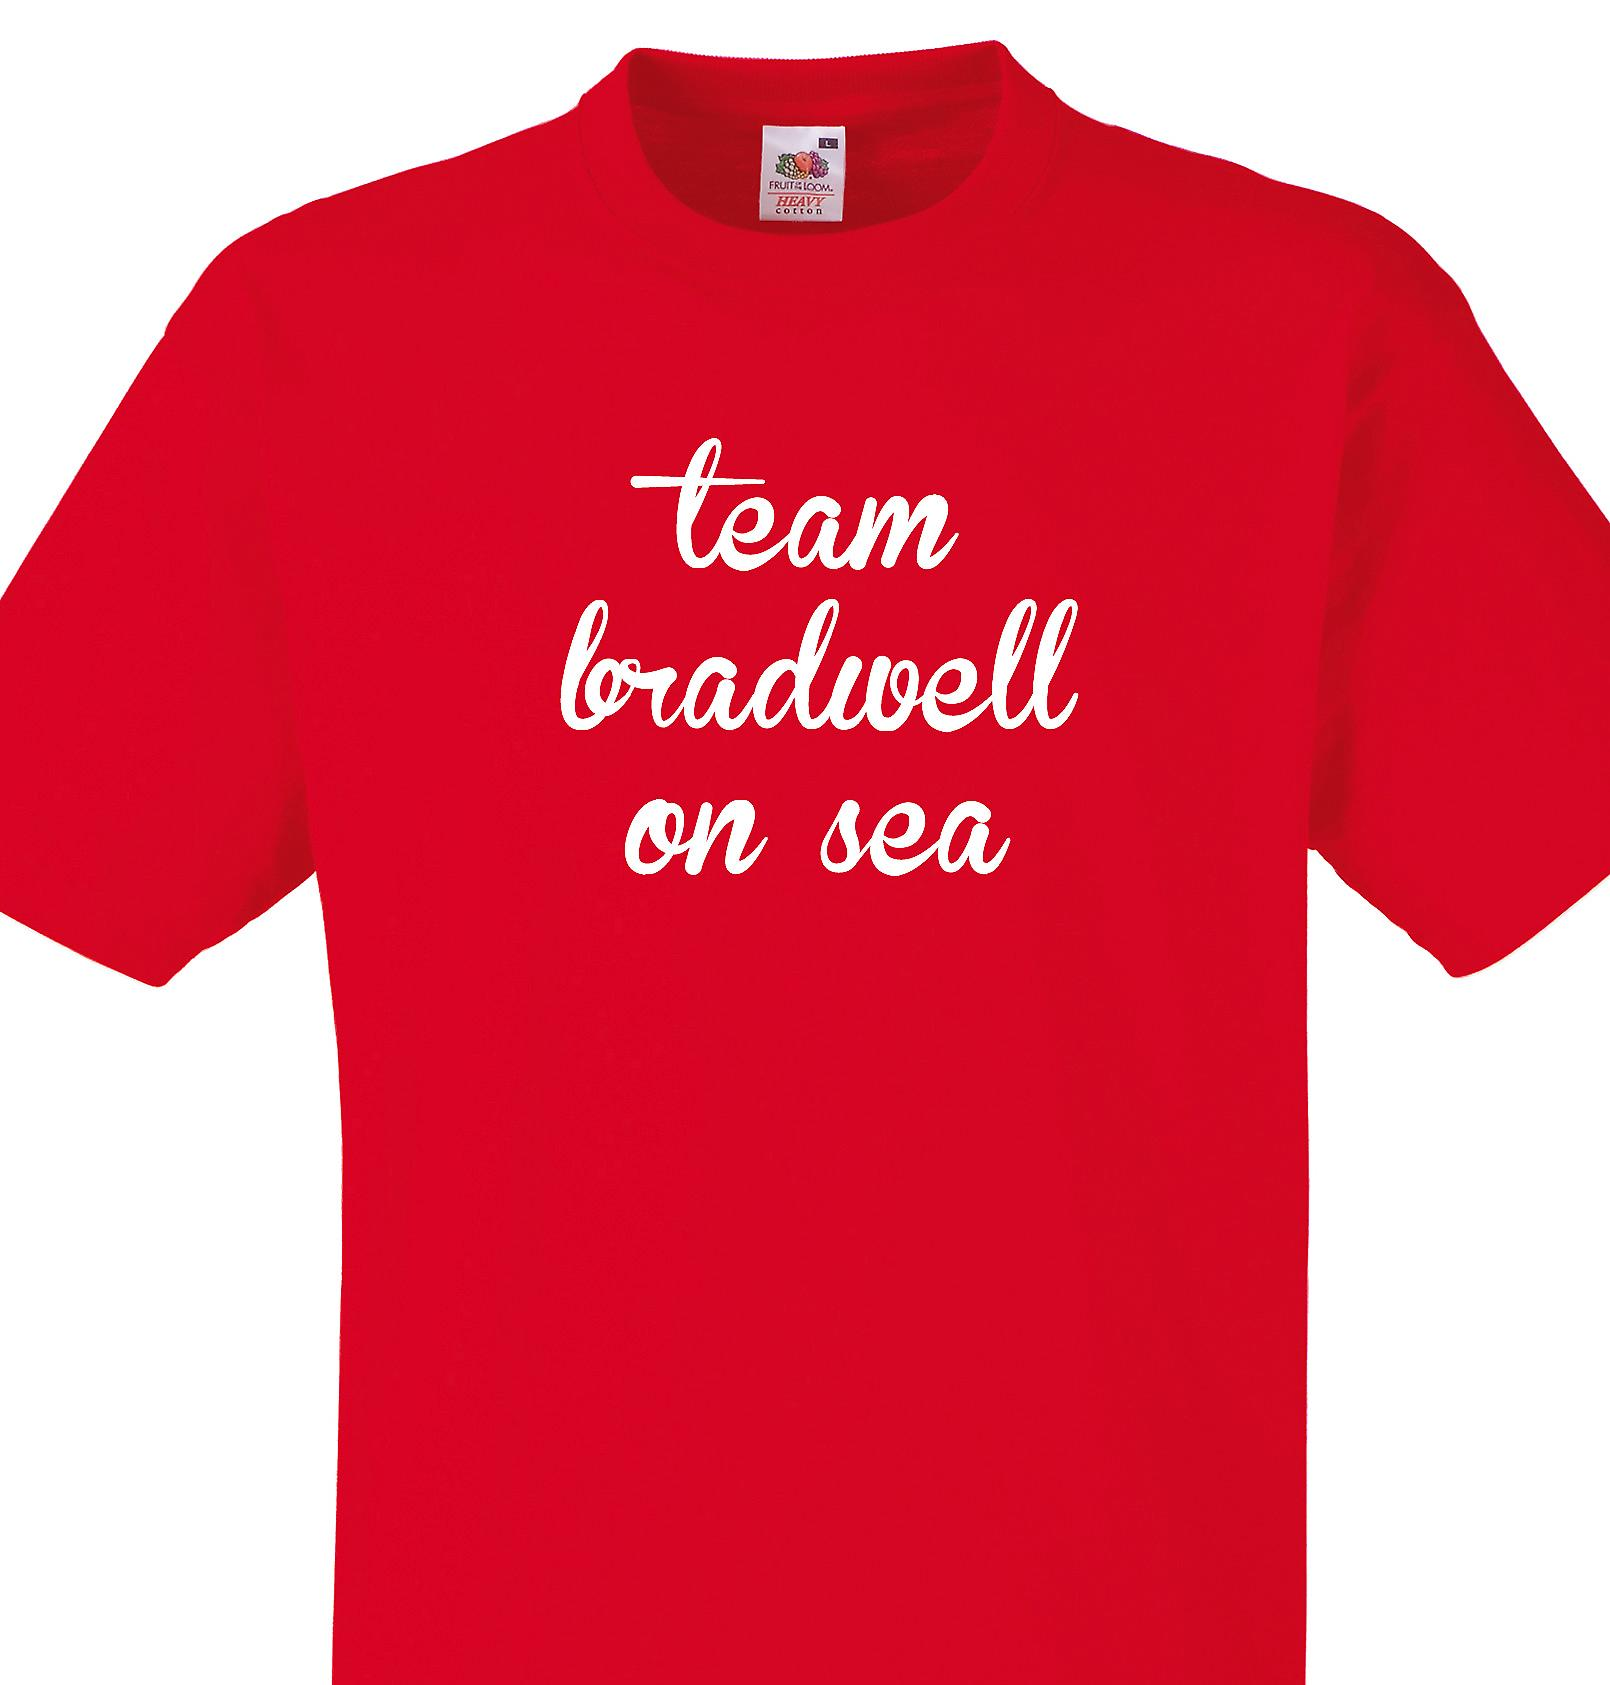 Team Bradwell on sea Red T shirt